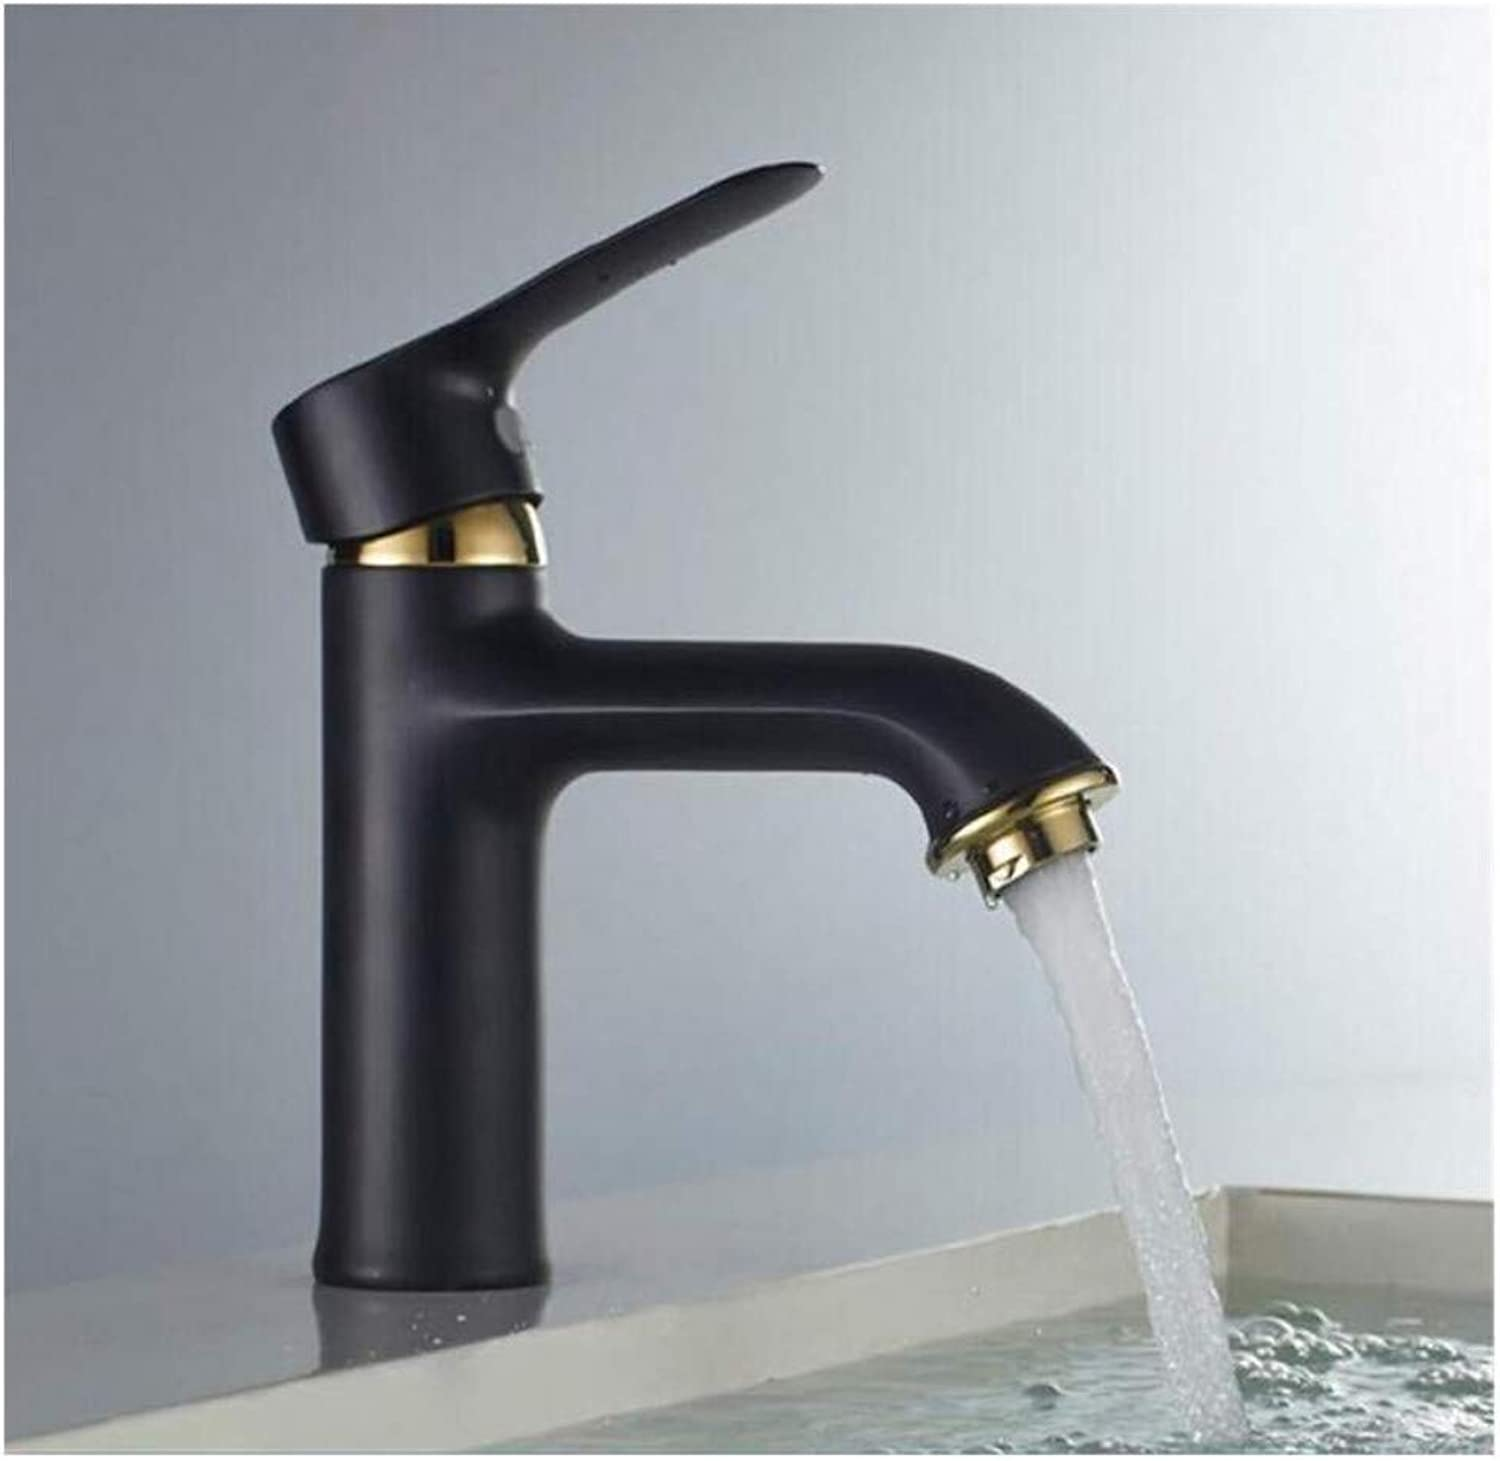 Chrome-Plated Adjustable Temperature-Sensitive Led Faucetfaucet Sinks Mixer Vanity Tap Cold and Hot Deck Mount Torneira